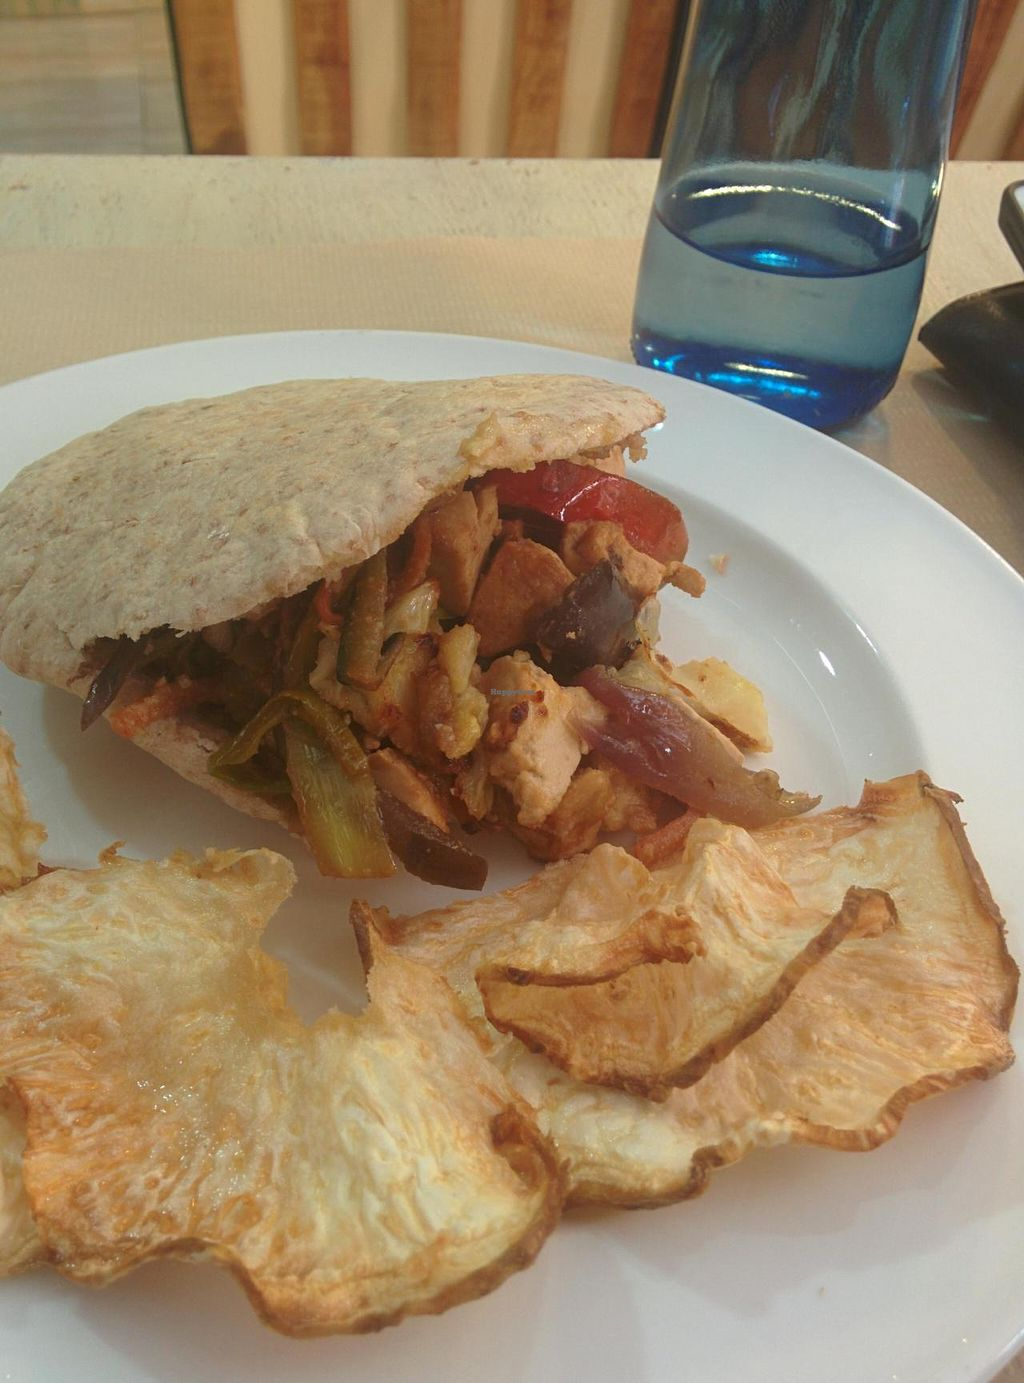 """Photo of Vita Viridis Restaurant  by <a href=""""/members/profile/Harp"""">Harp</a> <br/>Smoked tofu pita <br/> July 31, 2014  - <a href='/contact/abuse/image/41476/75634'>Report</a>"""